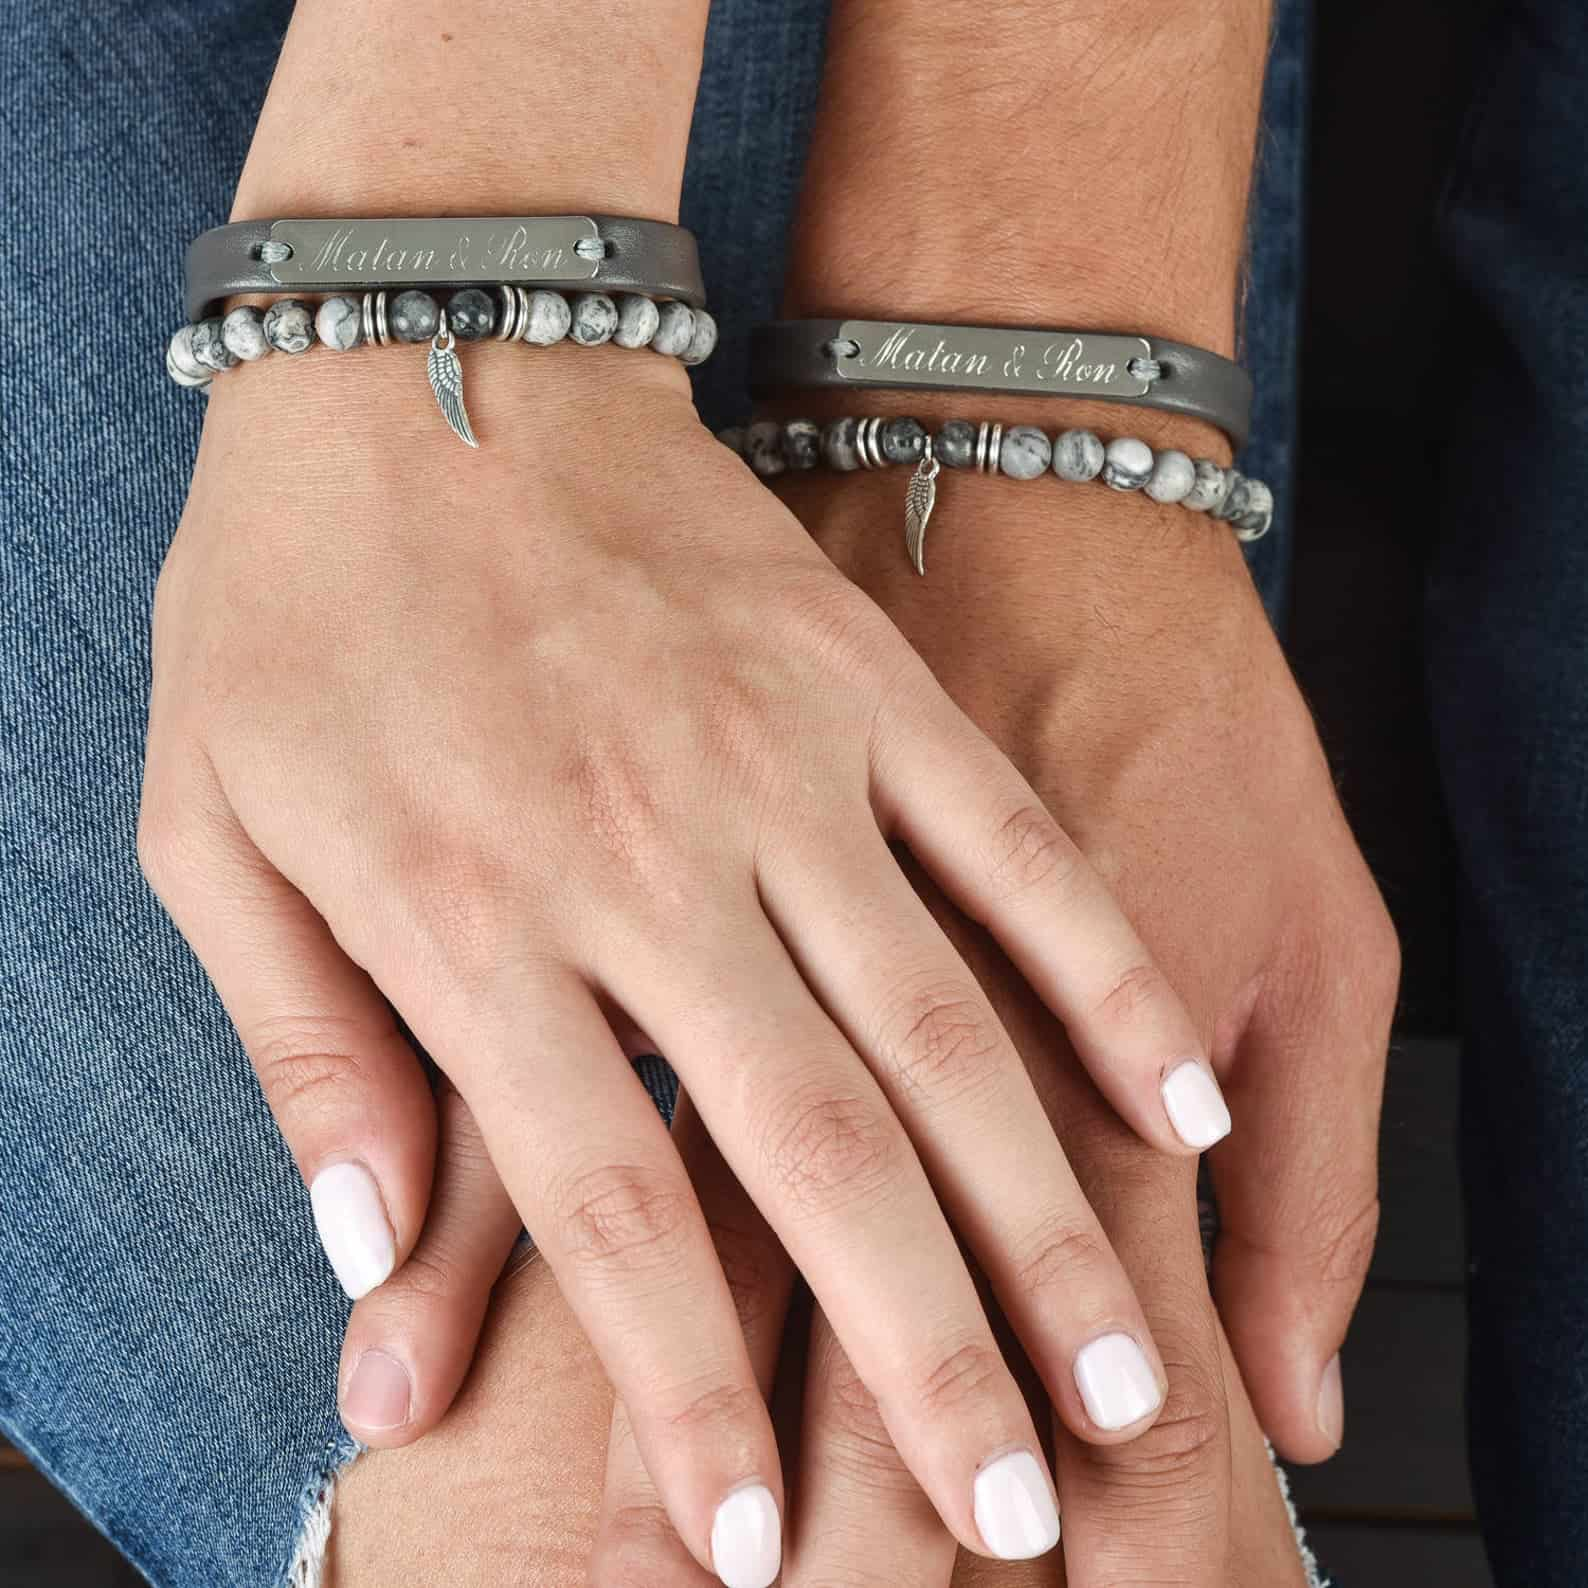 Stainless steel personalized couples bracelets